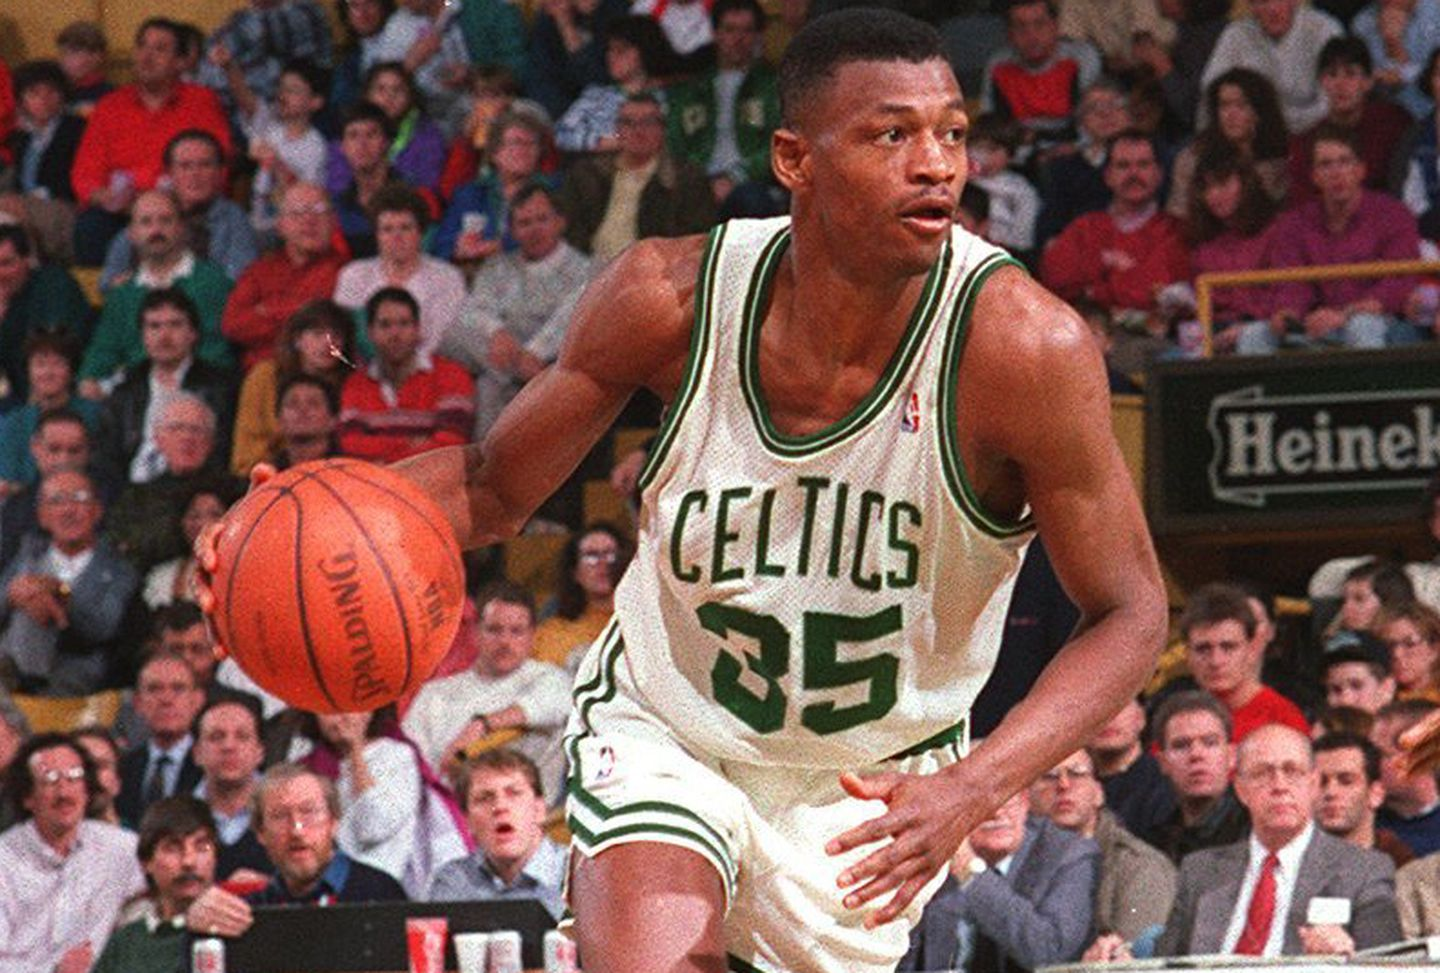 Reggie Lewis played in 450 games for the Celtics.